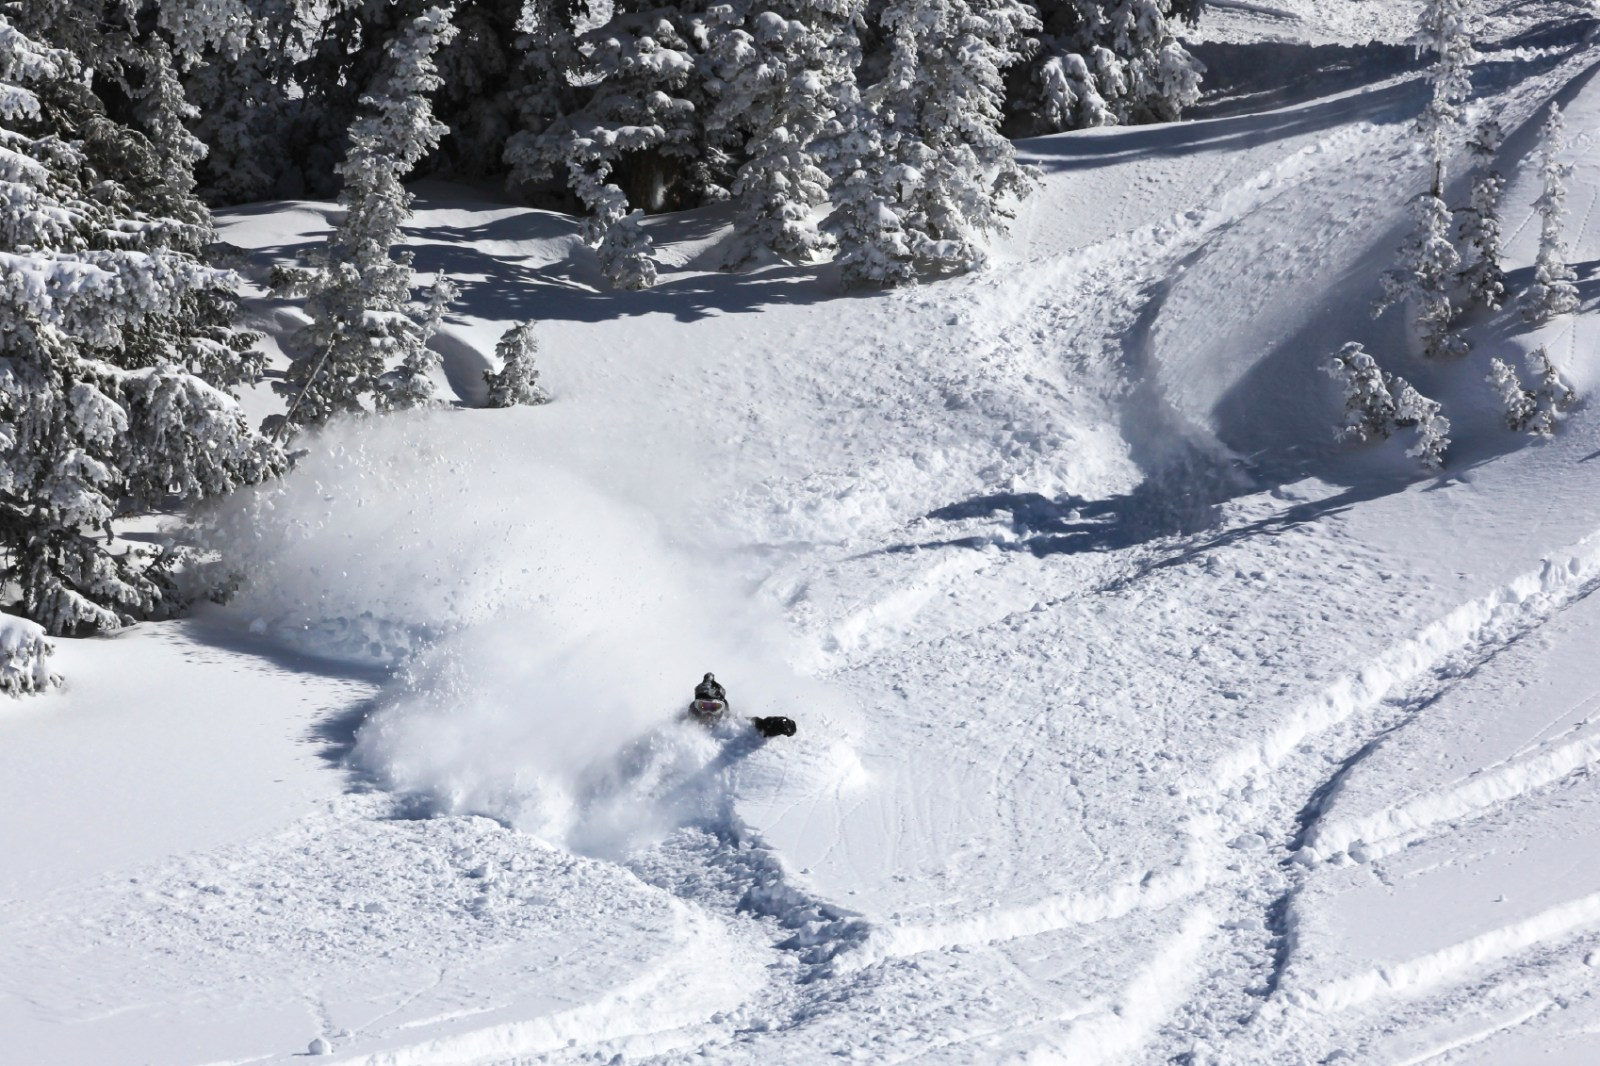 Man skiing through powder